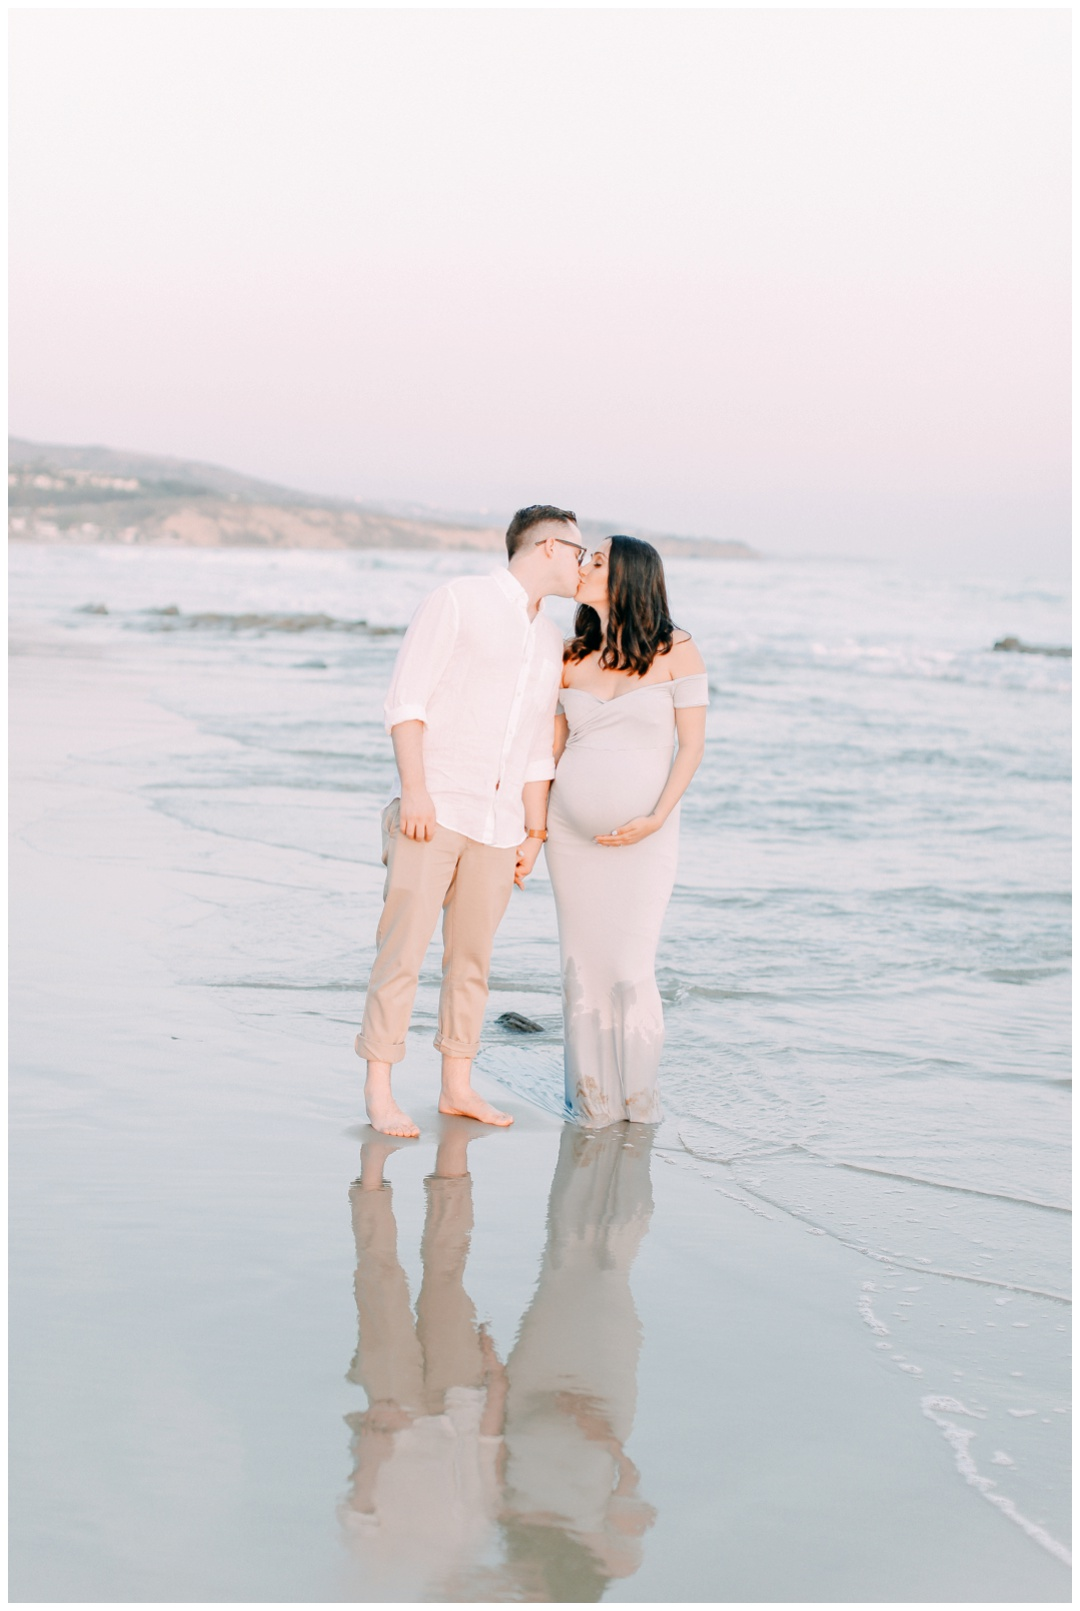 Newport_Beach_Maternity_Photographer_The_Merrill_Maternity_Session_Newport_Beach_Maternity_Photography_Orange_County_Photography_Cori_Kleckner_Photography_Orange_County_Beach_Photography_The_Ritz_Carlton_Laguna_Niguel_Resort_ Maternity_Session__1781.jpg